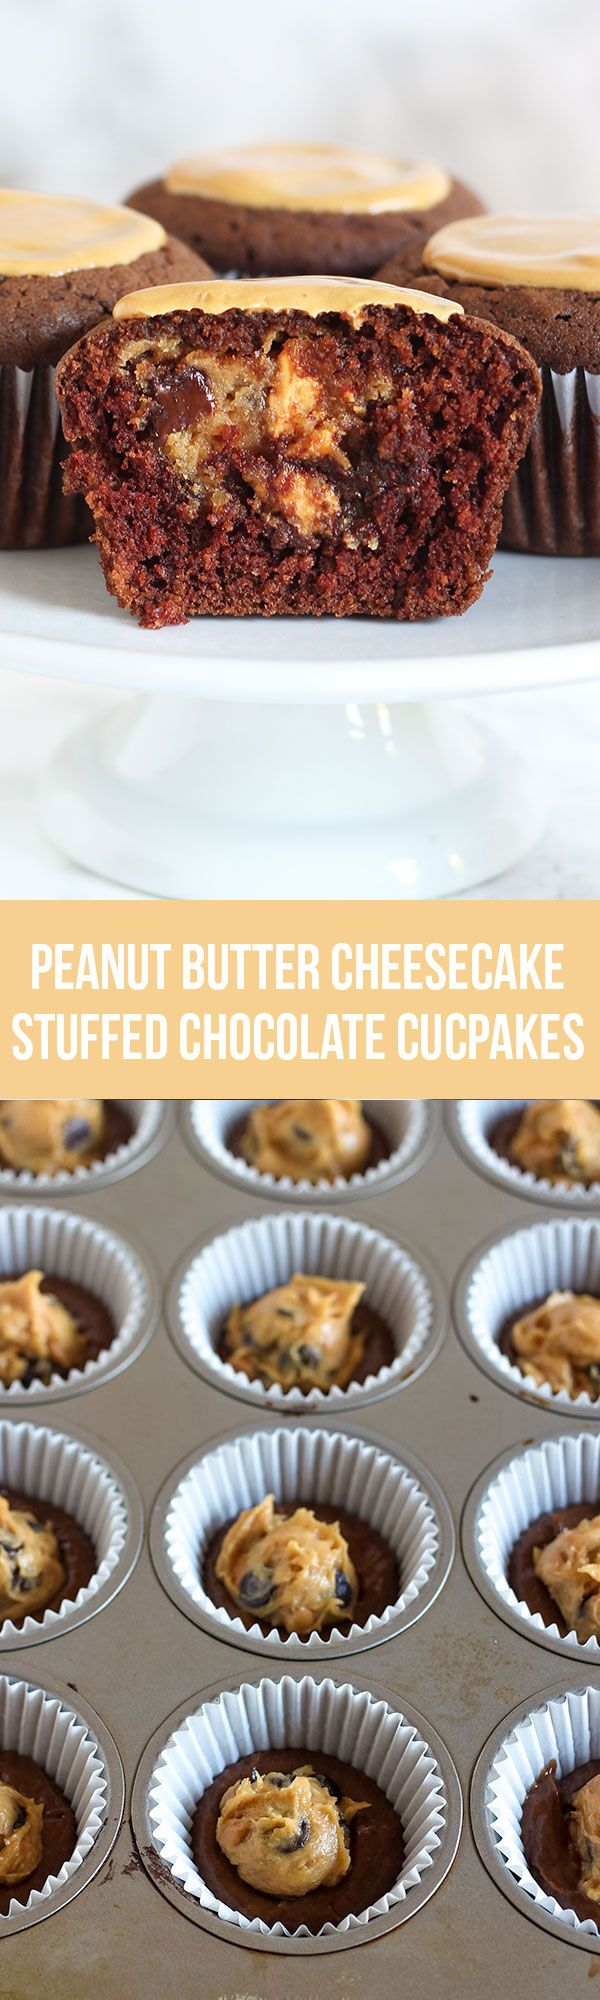 SURPRISE INSIDE! We loved this recipe! Peanut Butter Cheesecake Stuffed Chocolate Cupcakes - aka heaven!